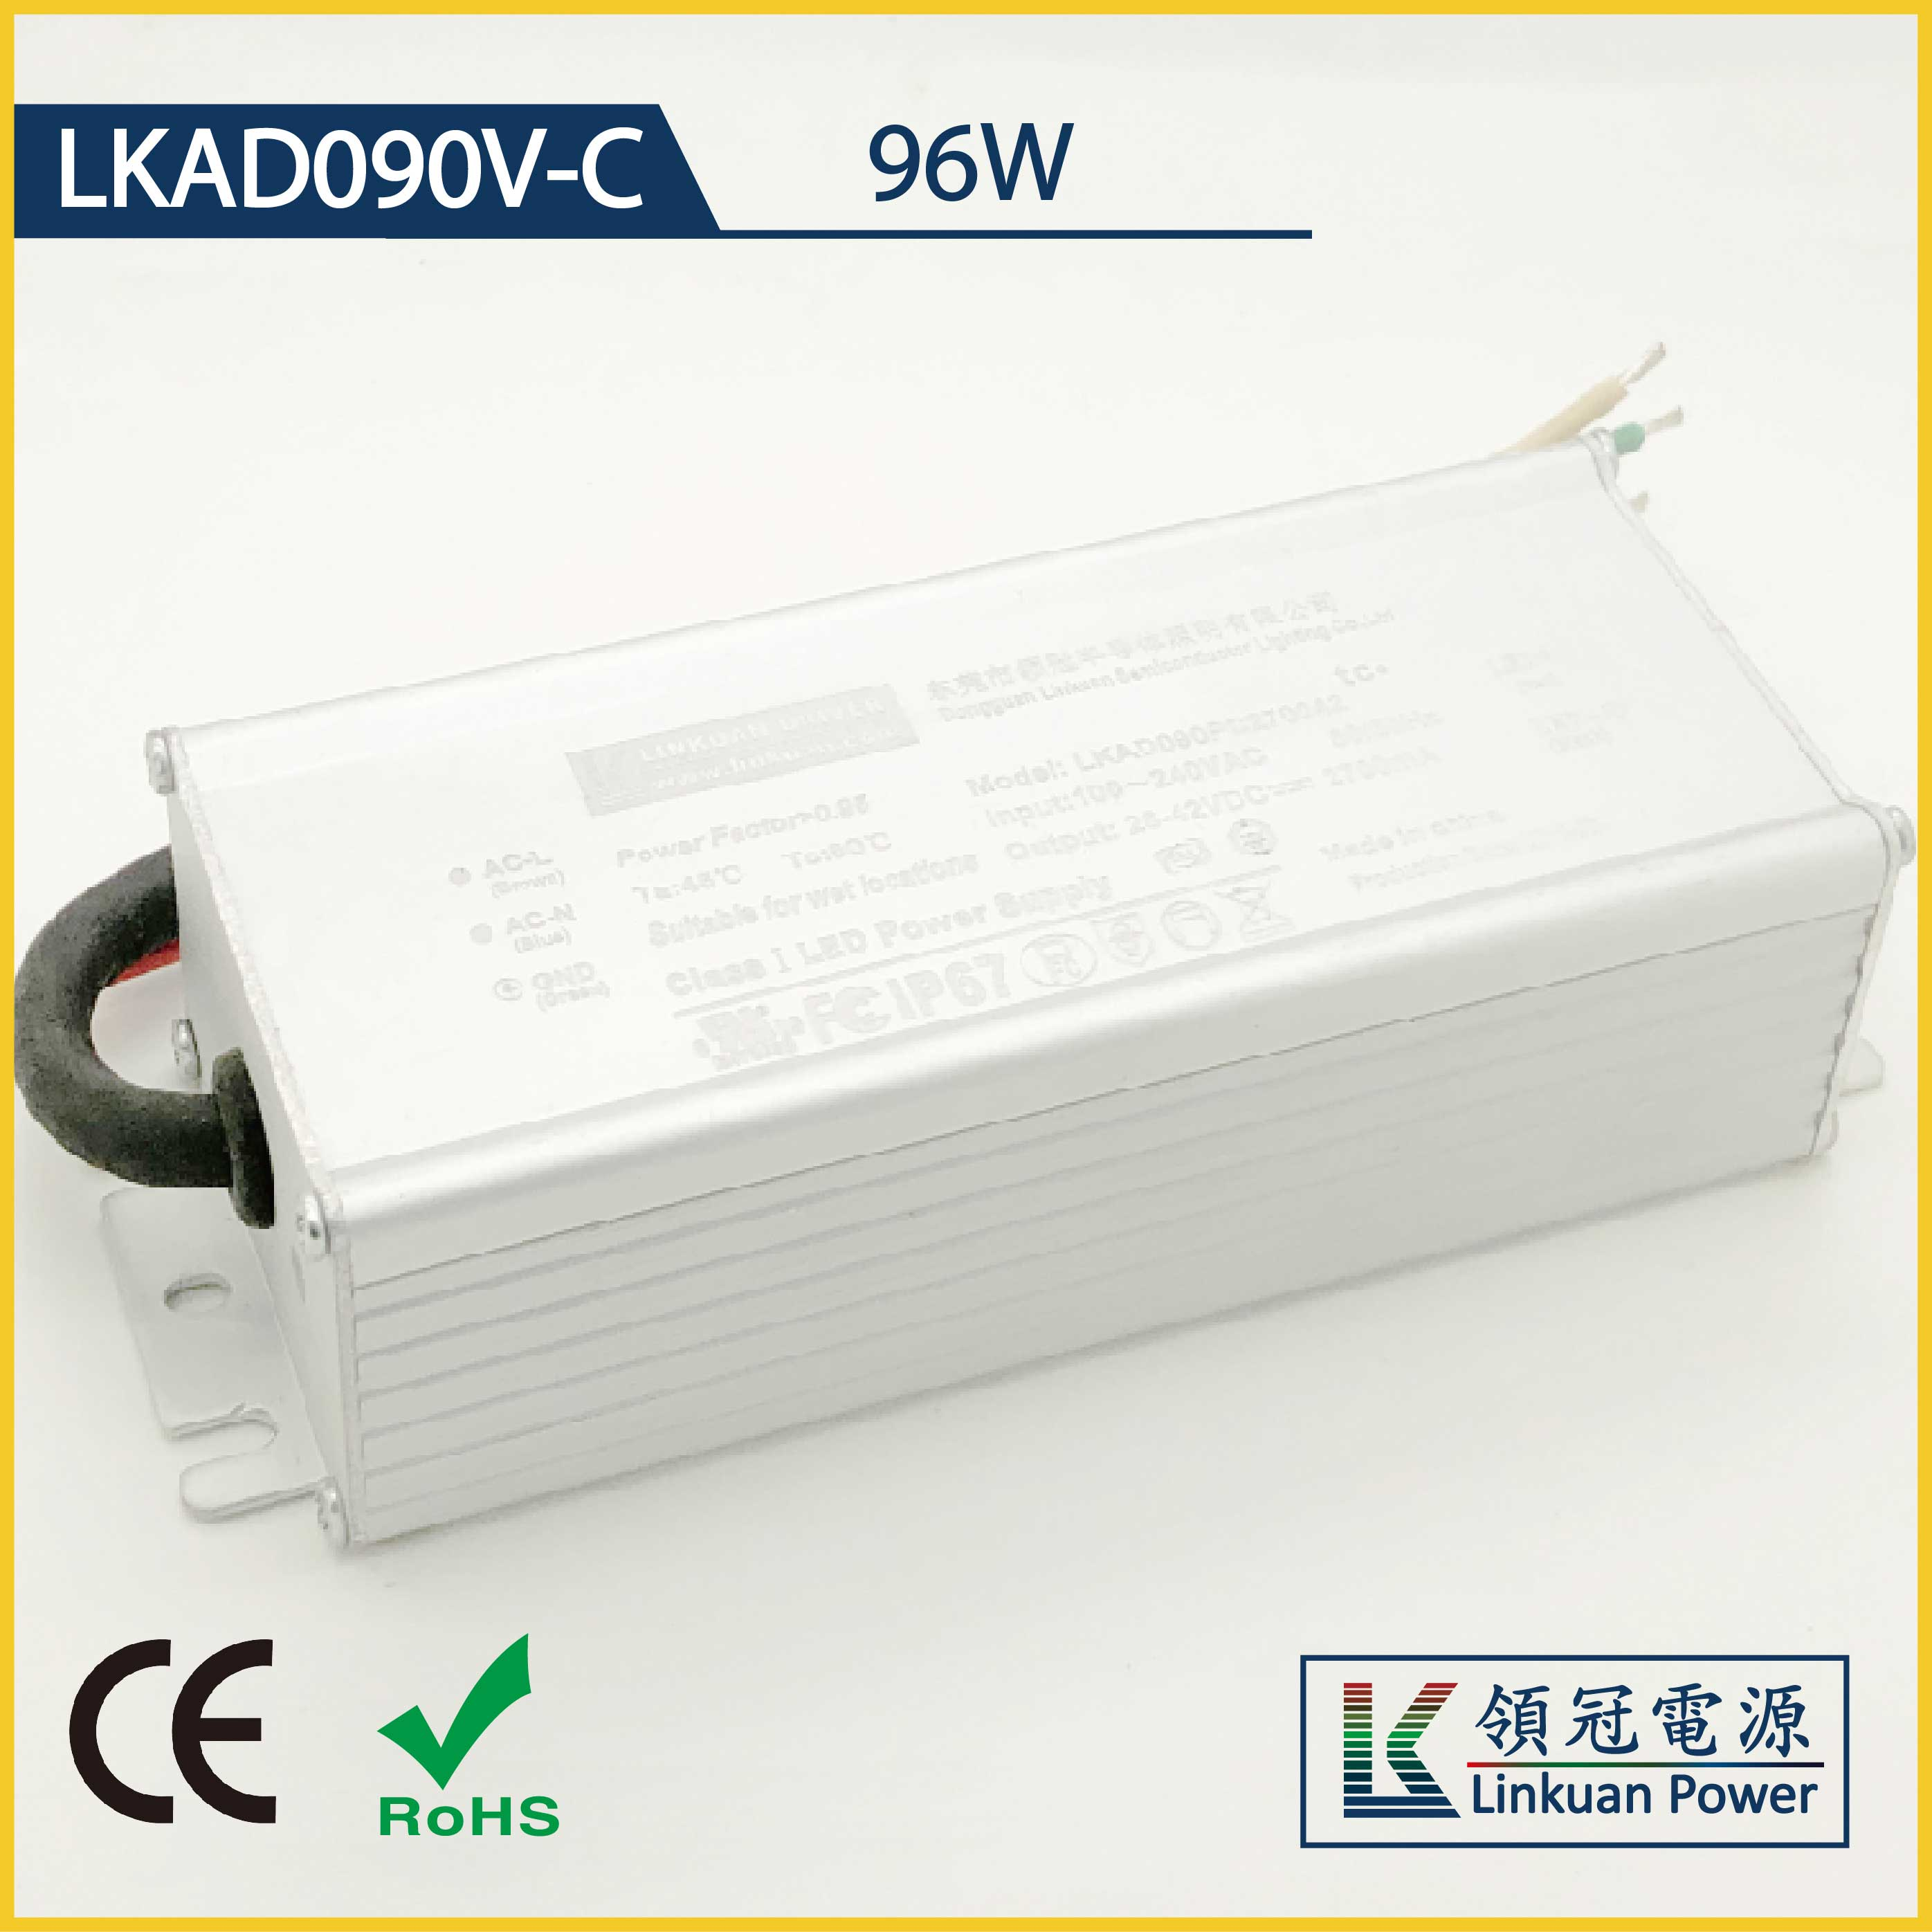 LKAD090V-C 96W 12/24V 8000/4500mA 0-10V Dimming LED drivers